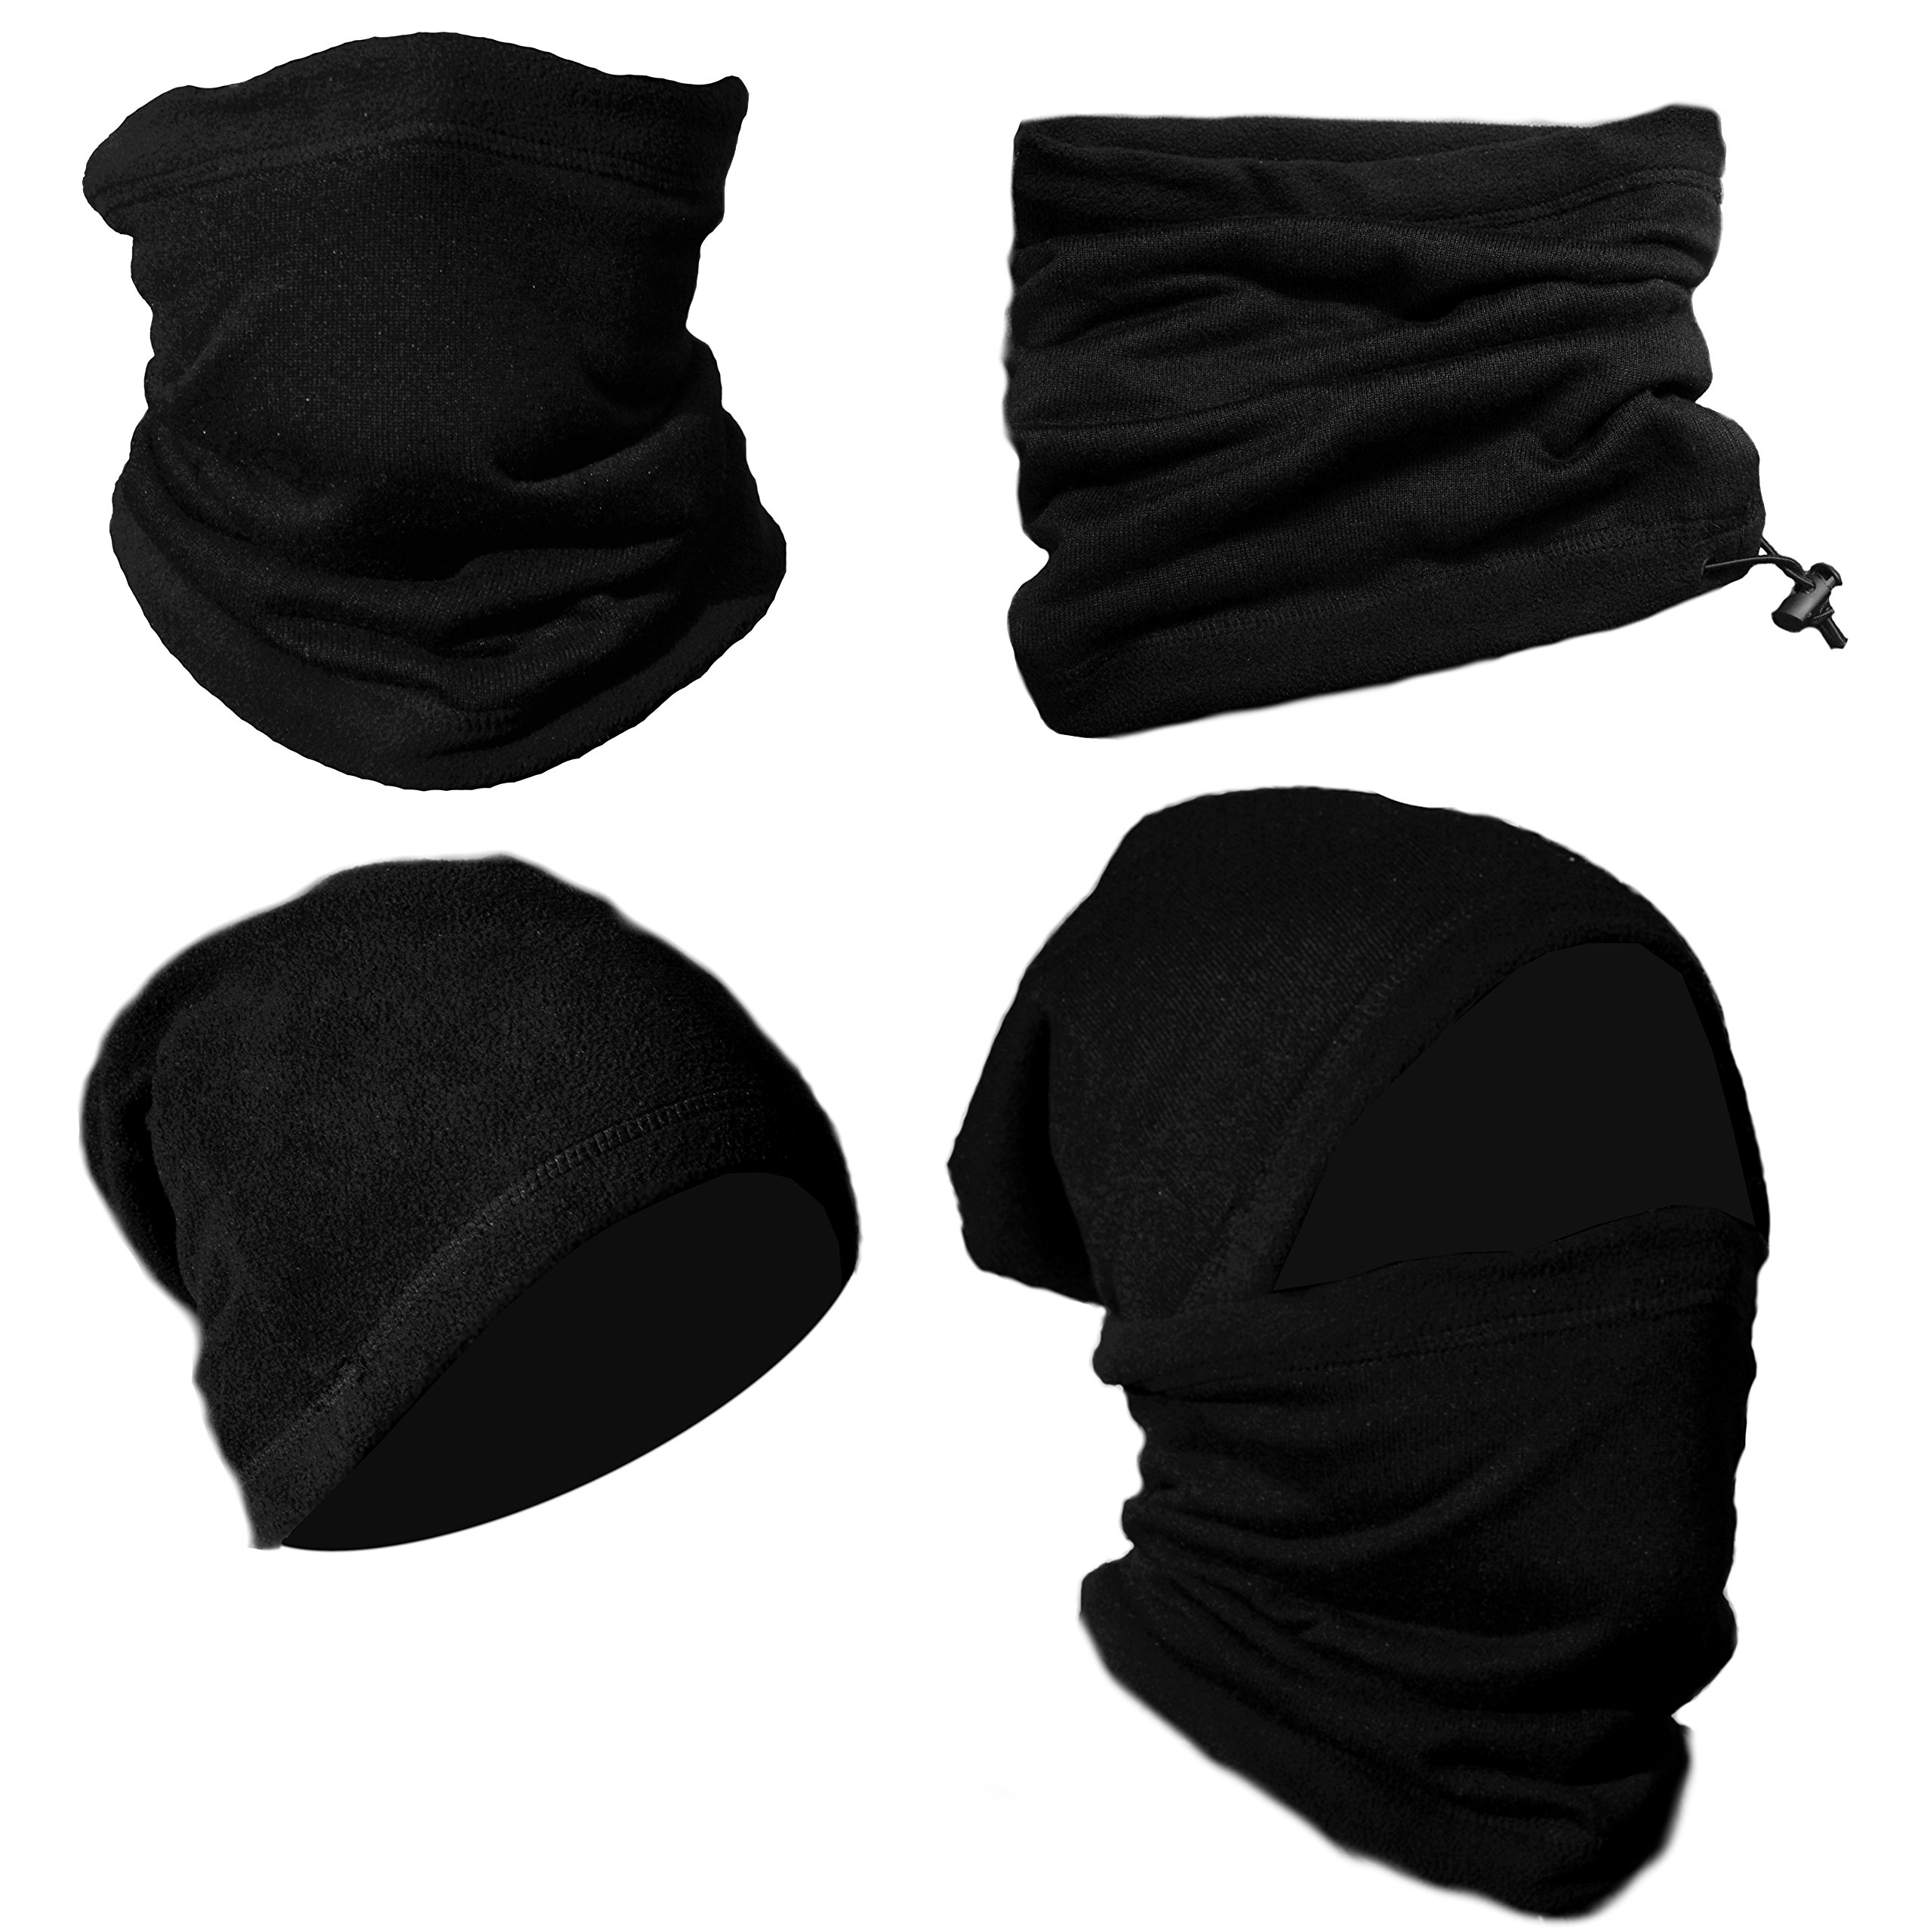 TEX-STYLE 2 Pack Premium Black Fleece Neck Warmer Neck Gaiter Balaclava Nose Warmer Tube Scarf Cap Beanie Headband Thermal Face Mask No-Pilling Multifunctional Headwear for Skiing & Winter Activities